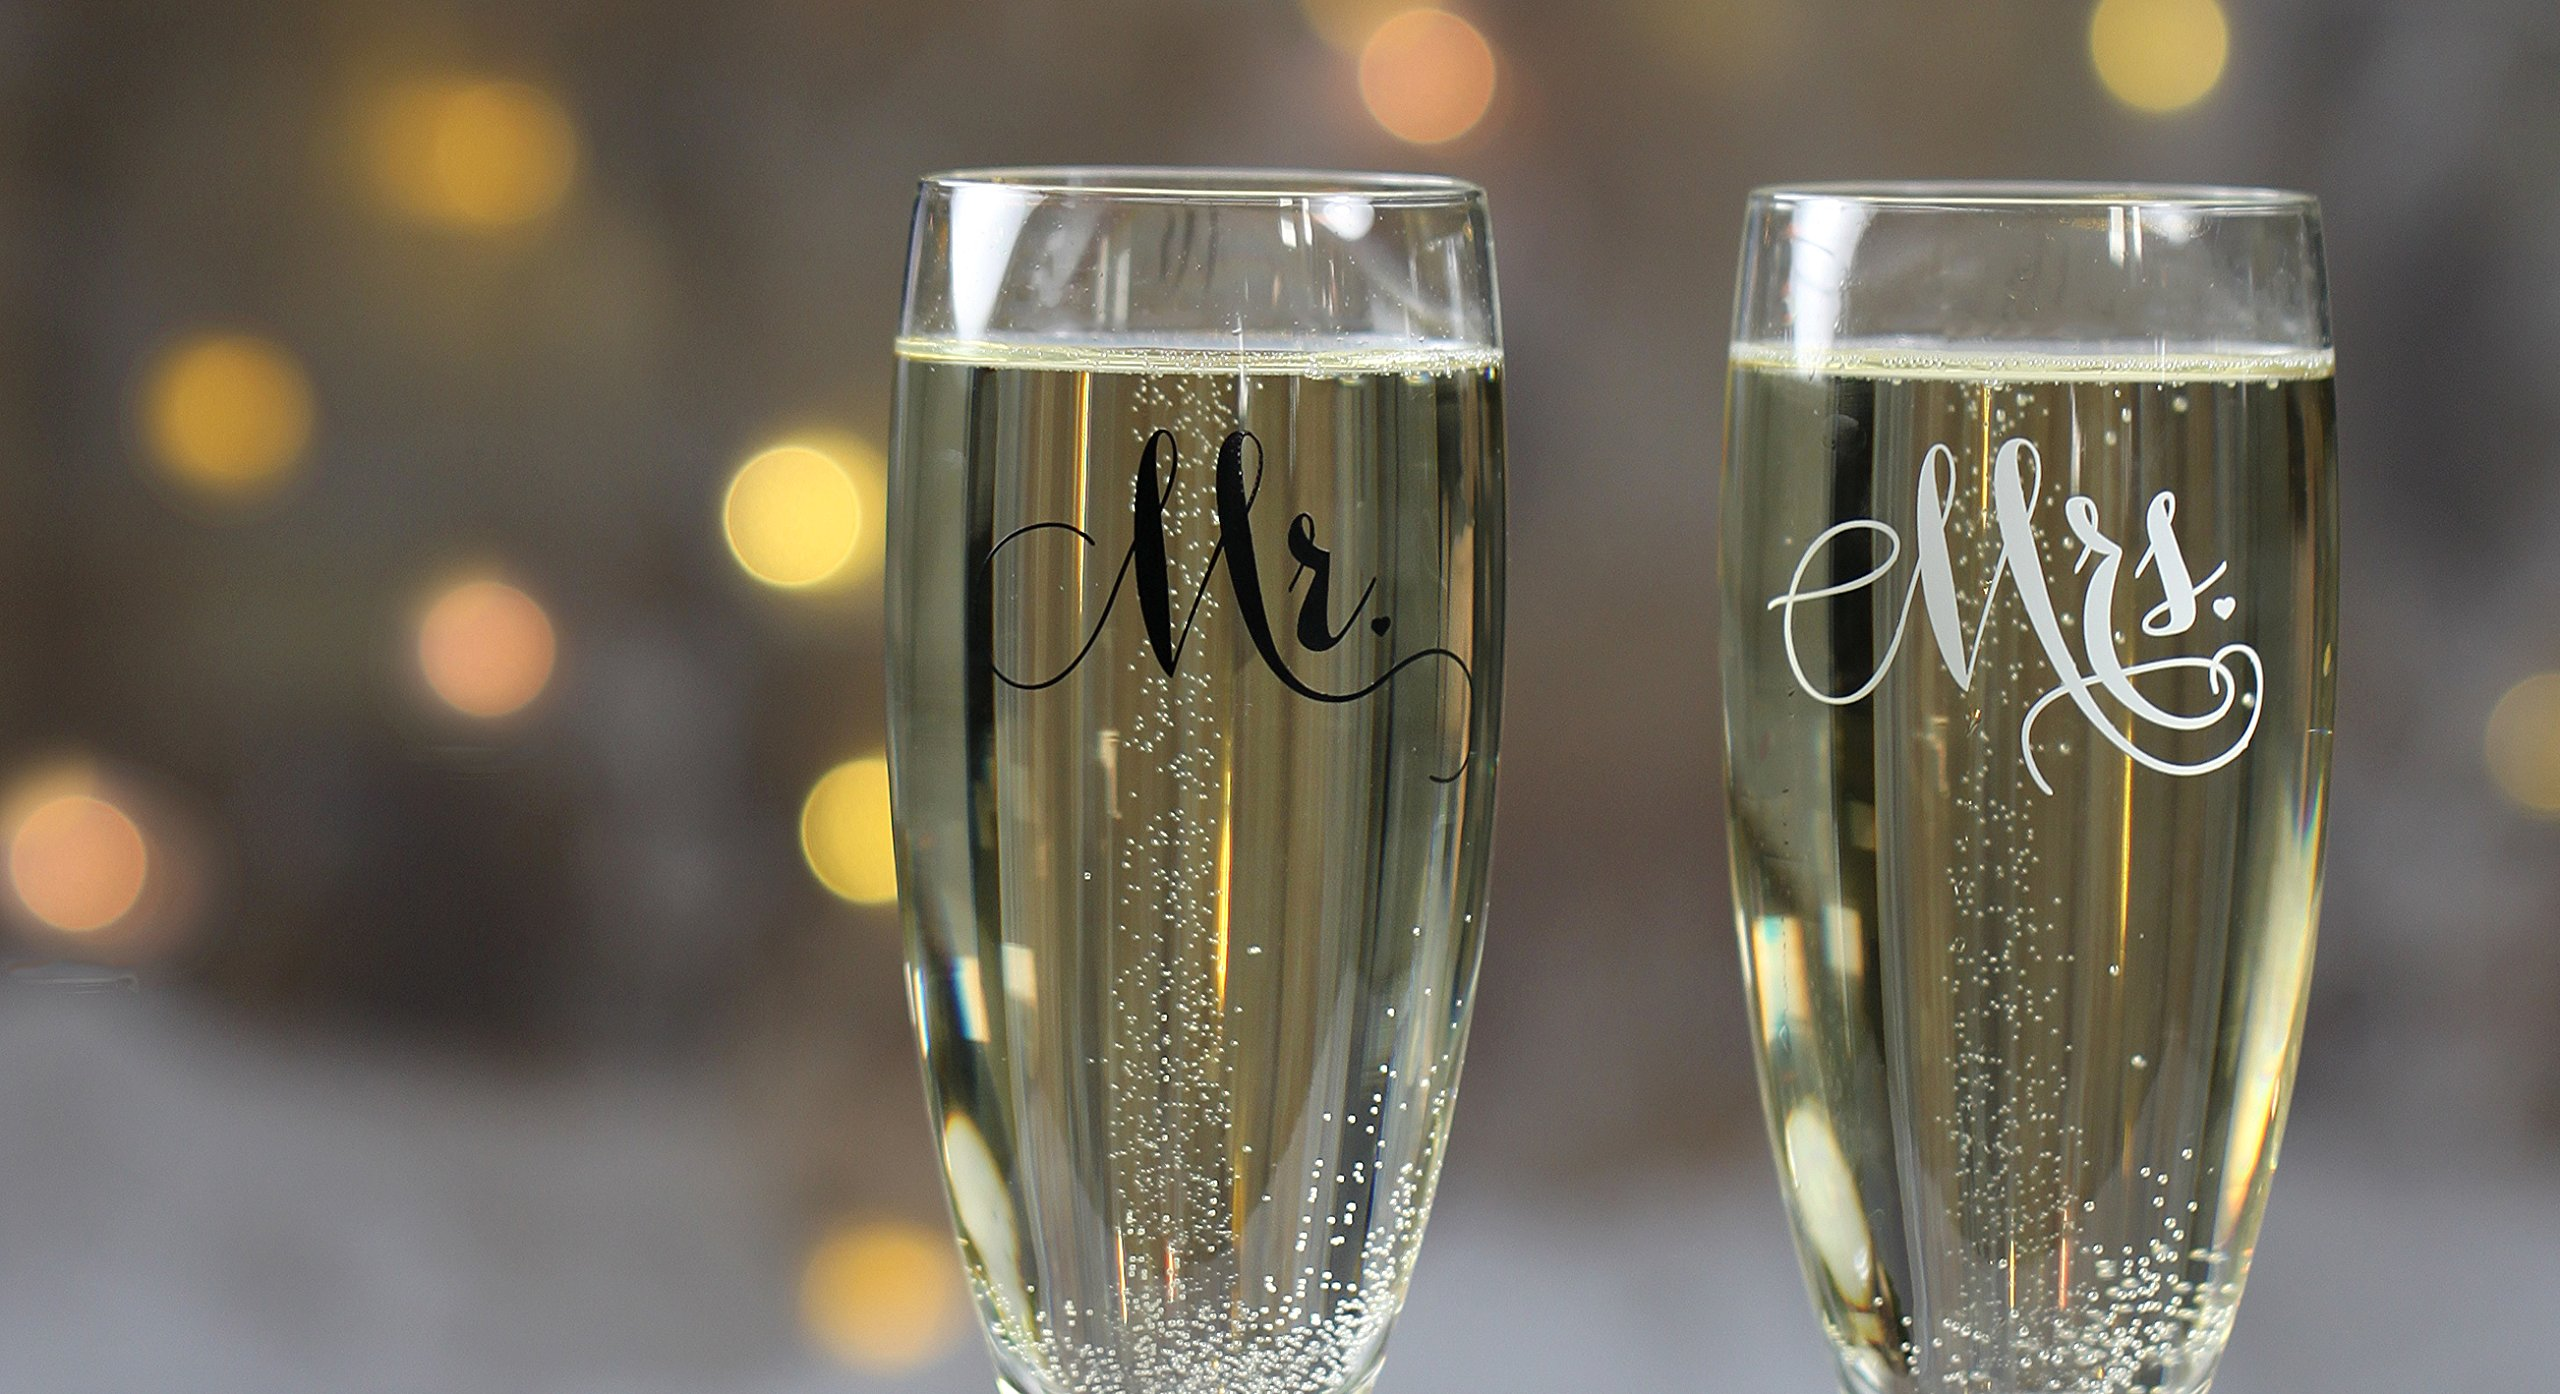 All Things Weddings, Mr. and Mrs. Wedding Glass Champagne Toasting Flutes, Reception or Engagement Bride and Groom Glasses, Set of 2 by All Things Weddings (Image #4)